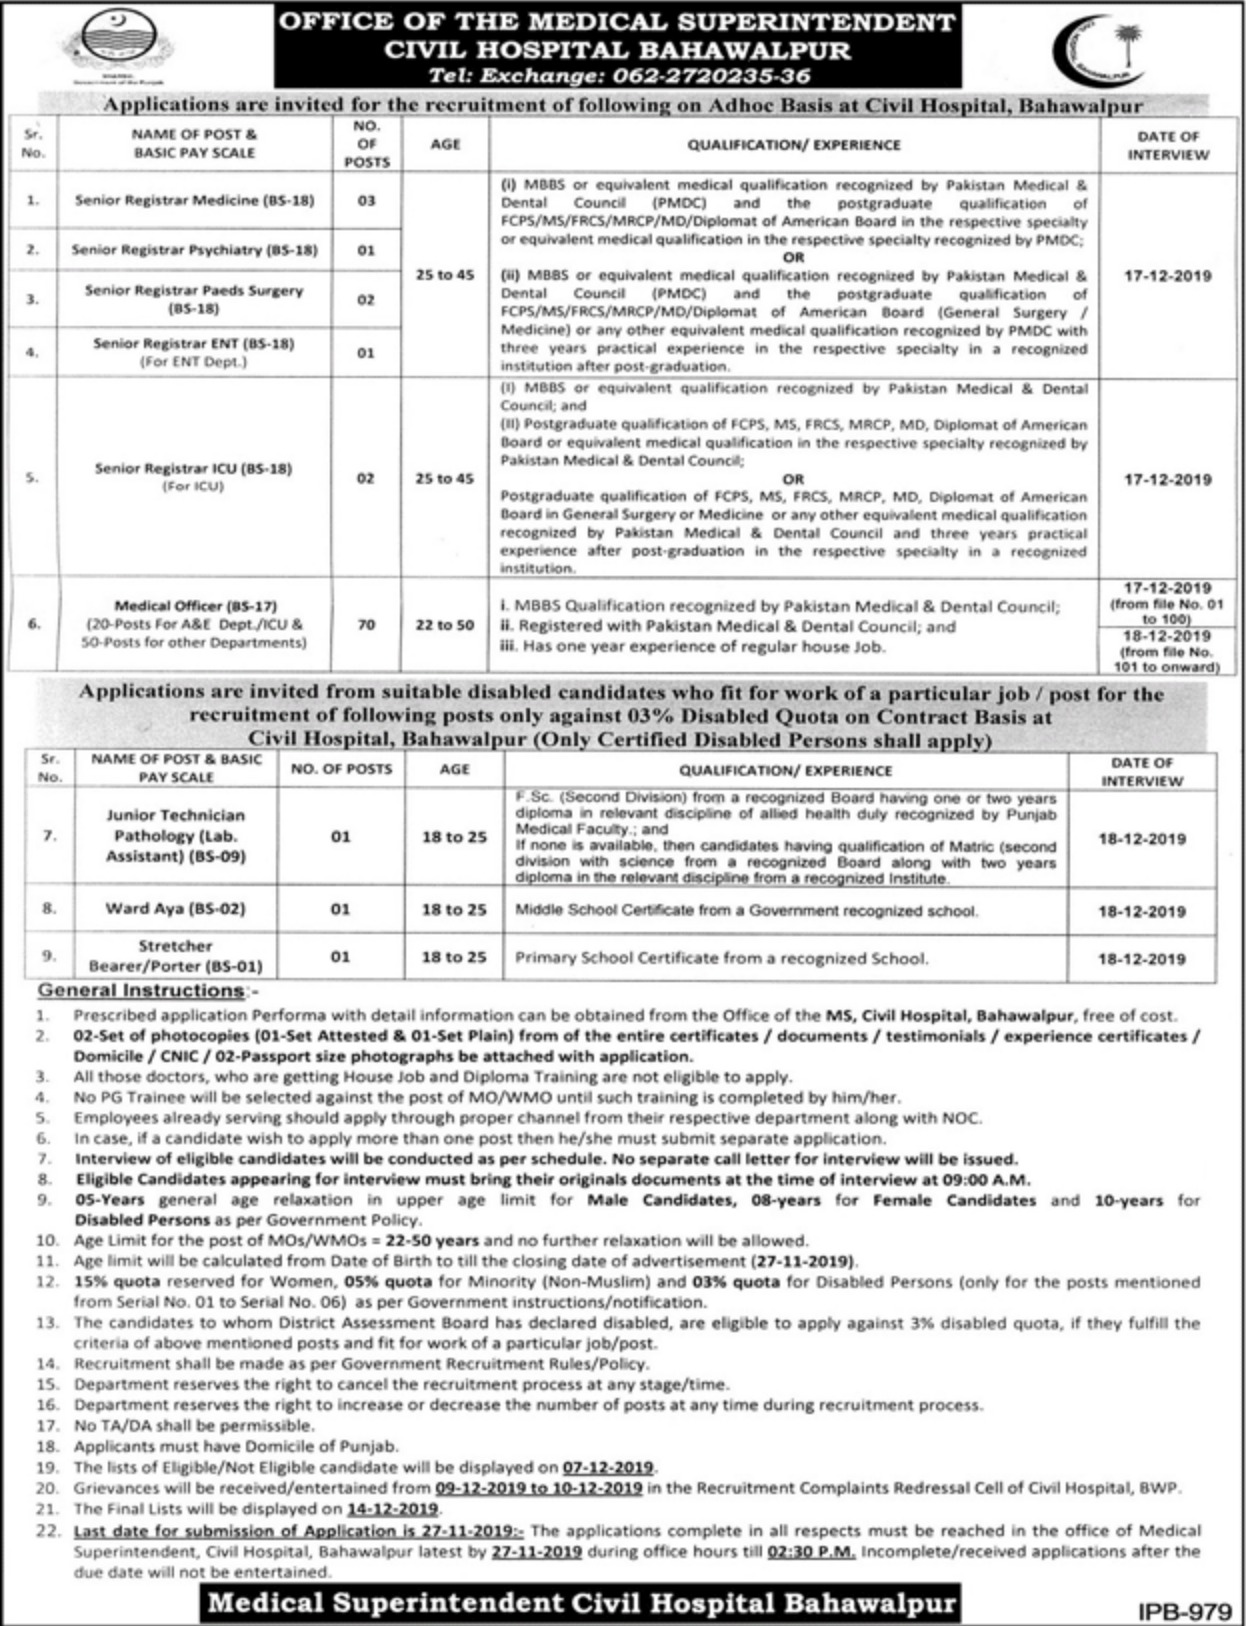 Civil Hospital Bahawalpur Jobs 2019